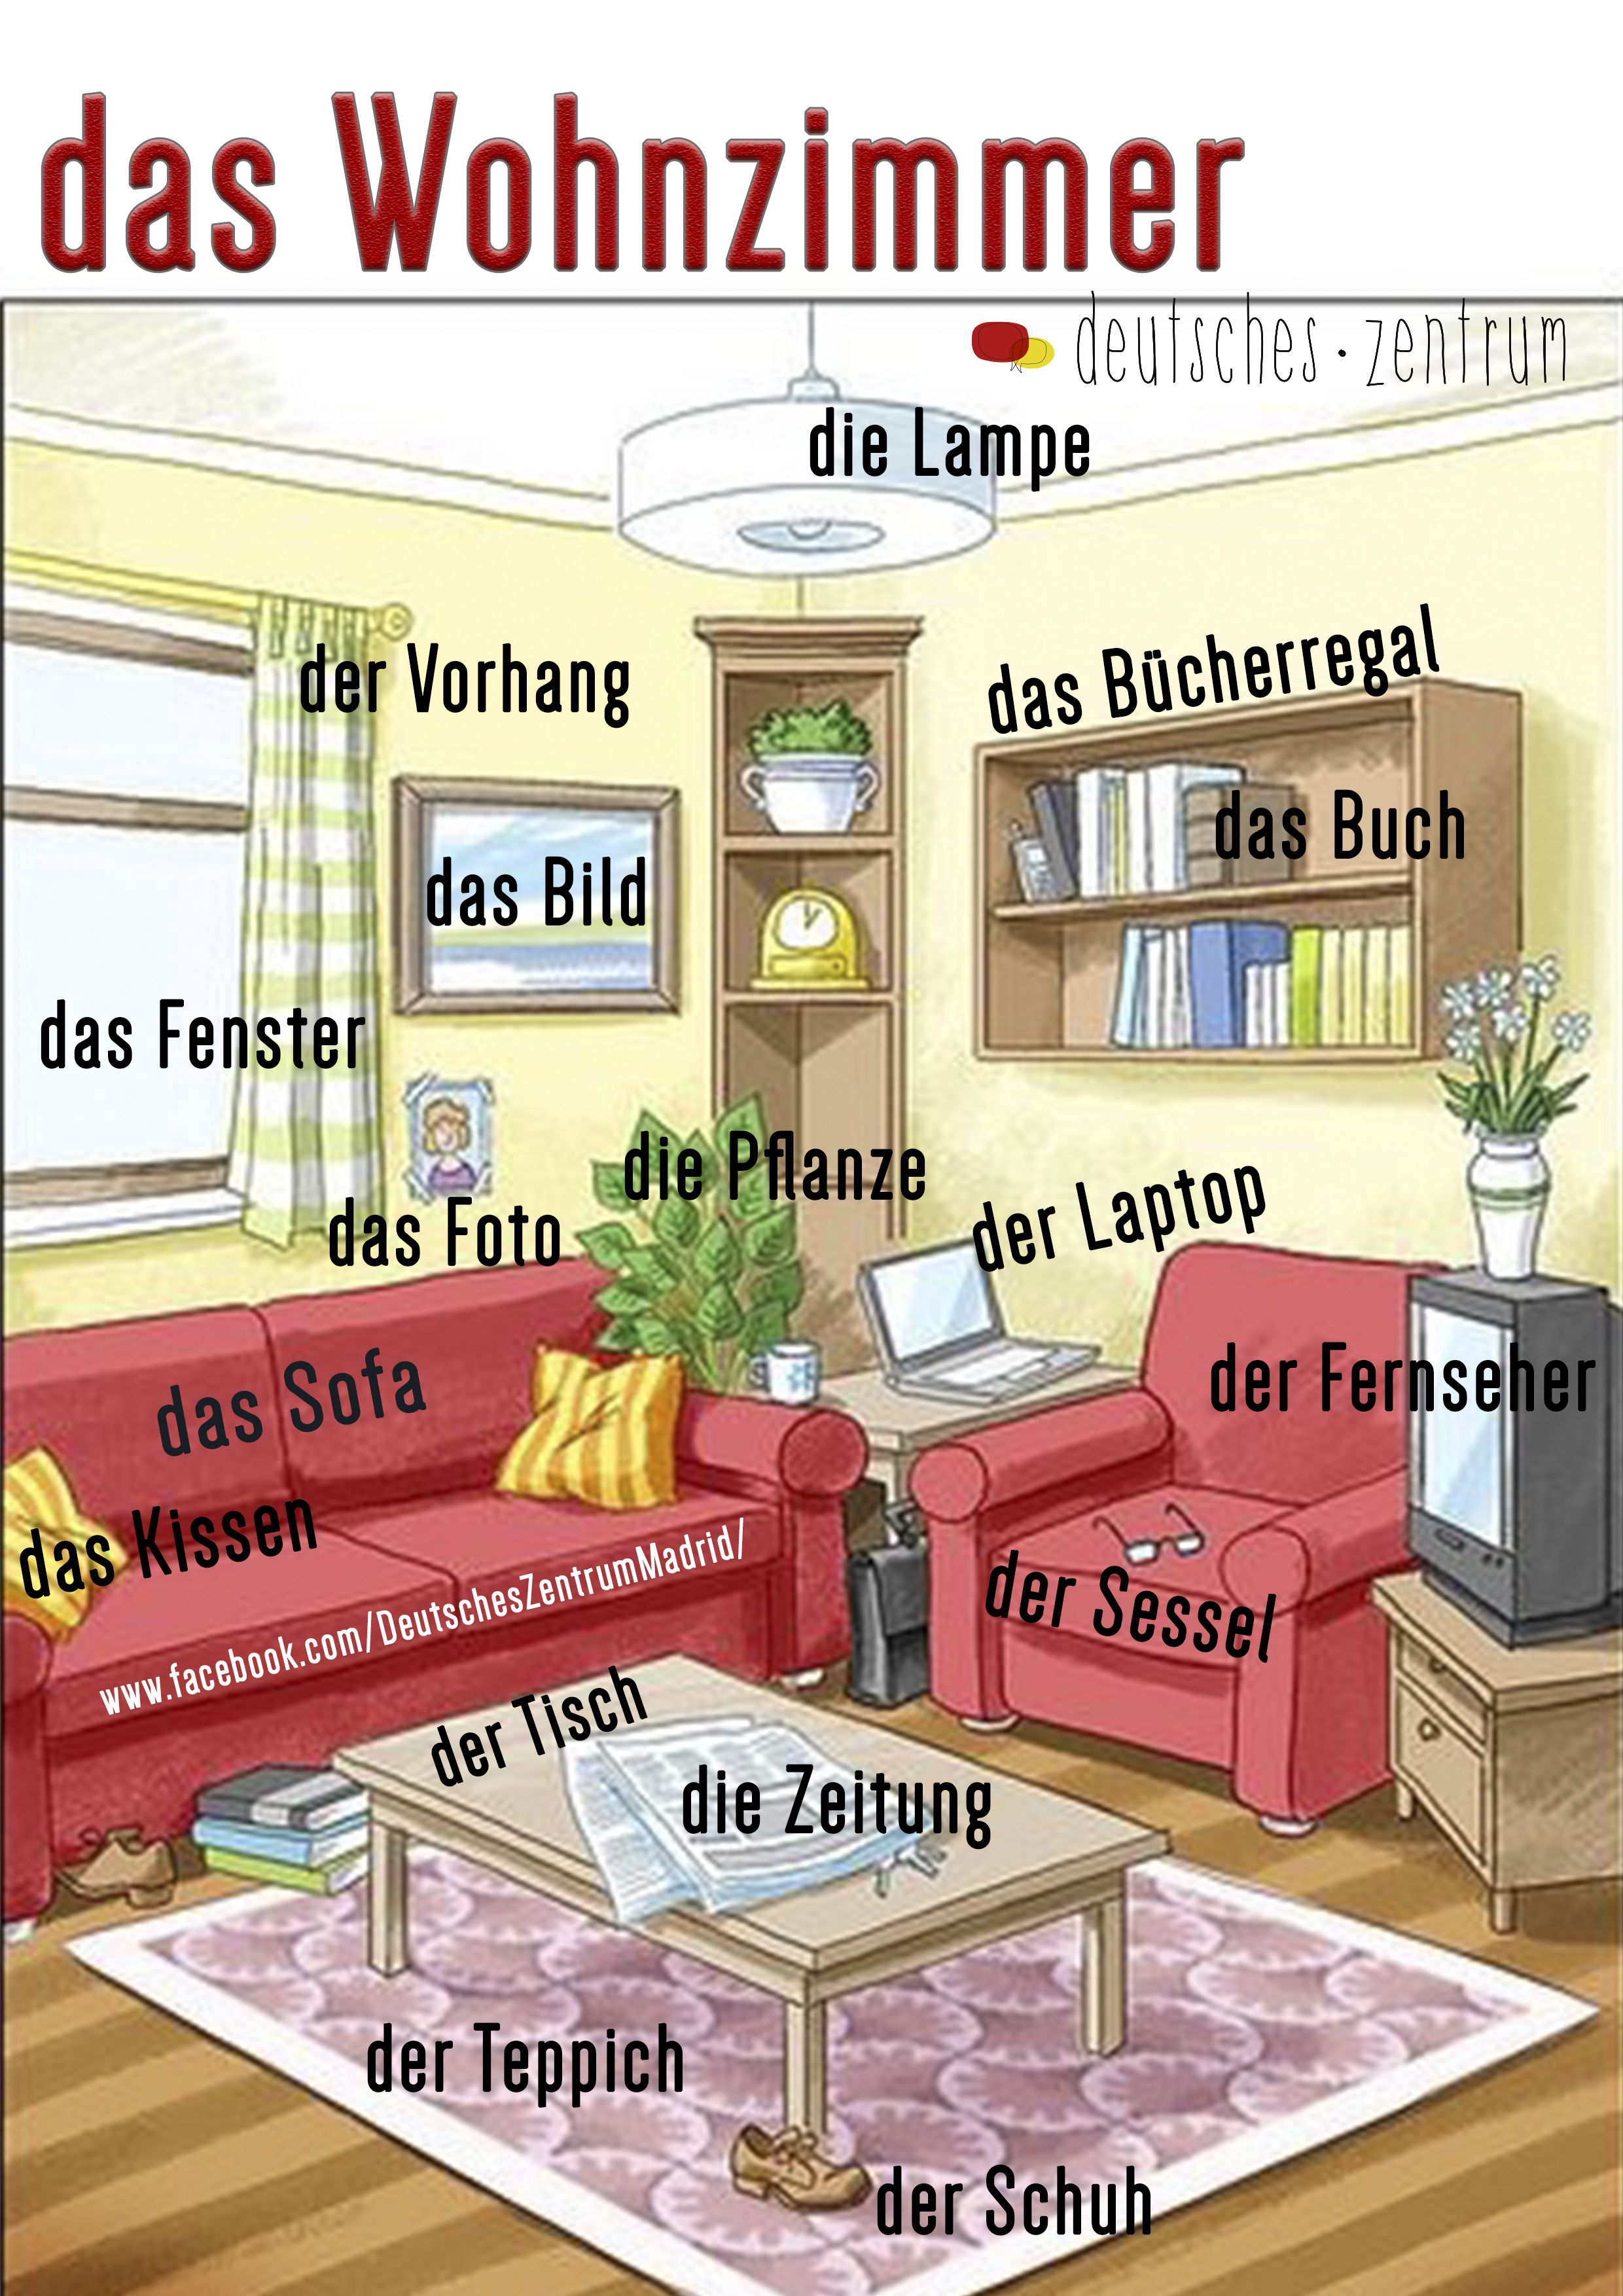 wohnzimmer deutsch wortschatz grammatik alem n german daf vocabulario n met pinterest. Black Bedroom Furniture Sets. Home Design Ideas